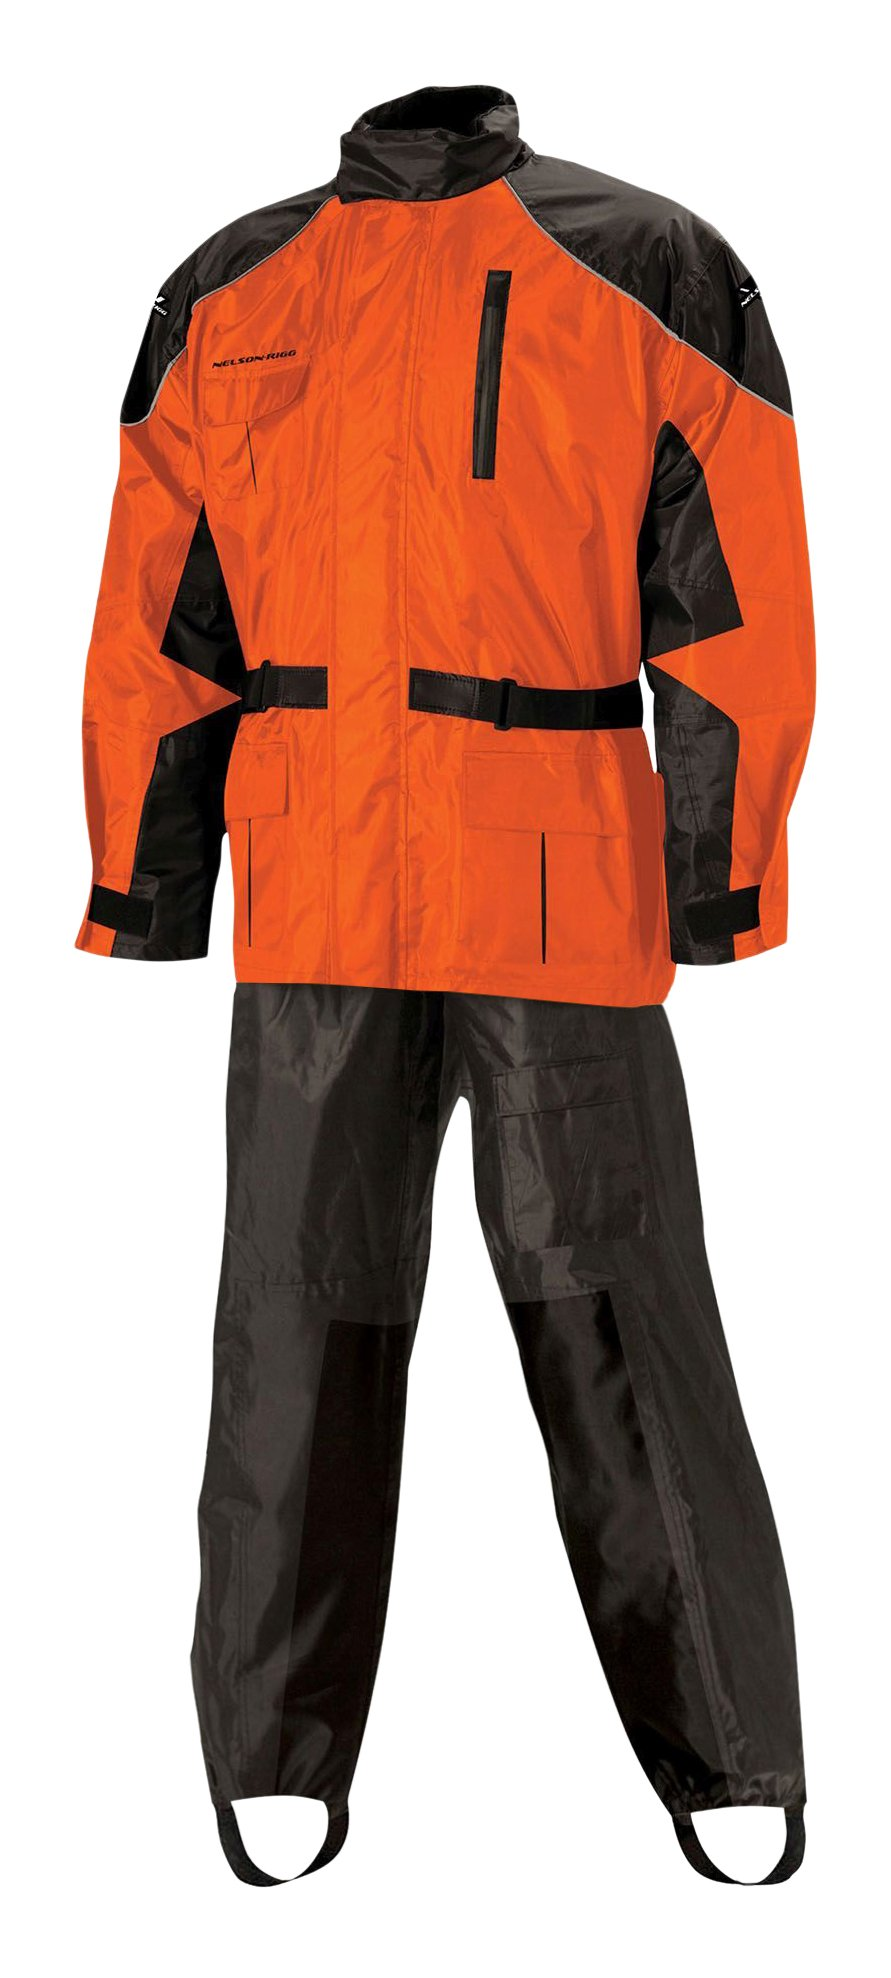 Nelson Rigg AS-3000-ORG-01-SM Unisex-Adult AS-3000 Aston Motorcycle Rain Suit 2-Piece, (Orange, Small), Large)